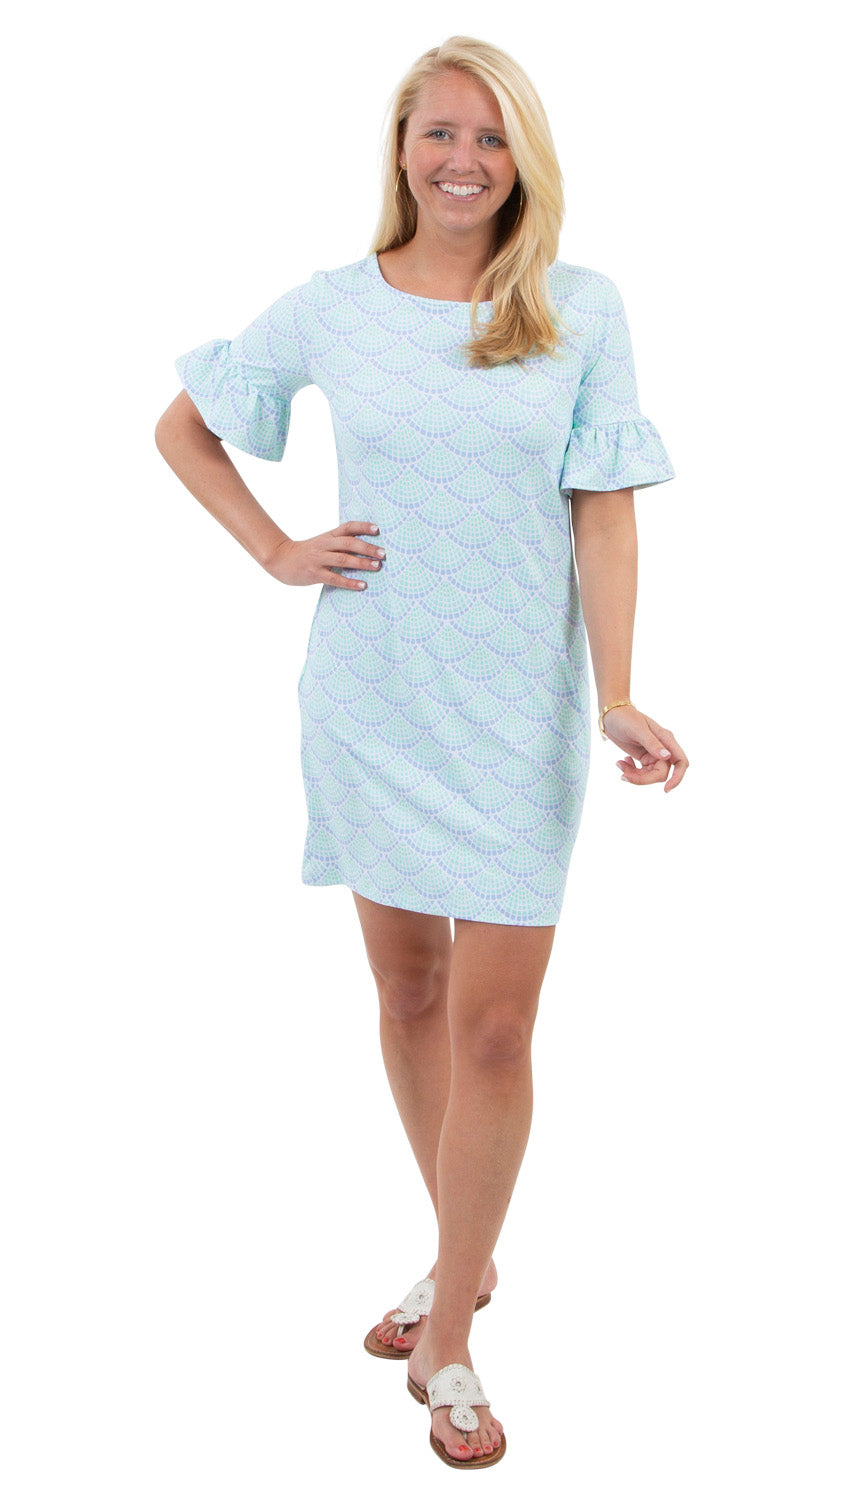 Dockside Dress - Seaglass